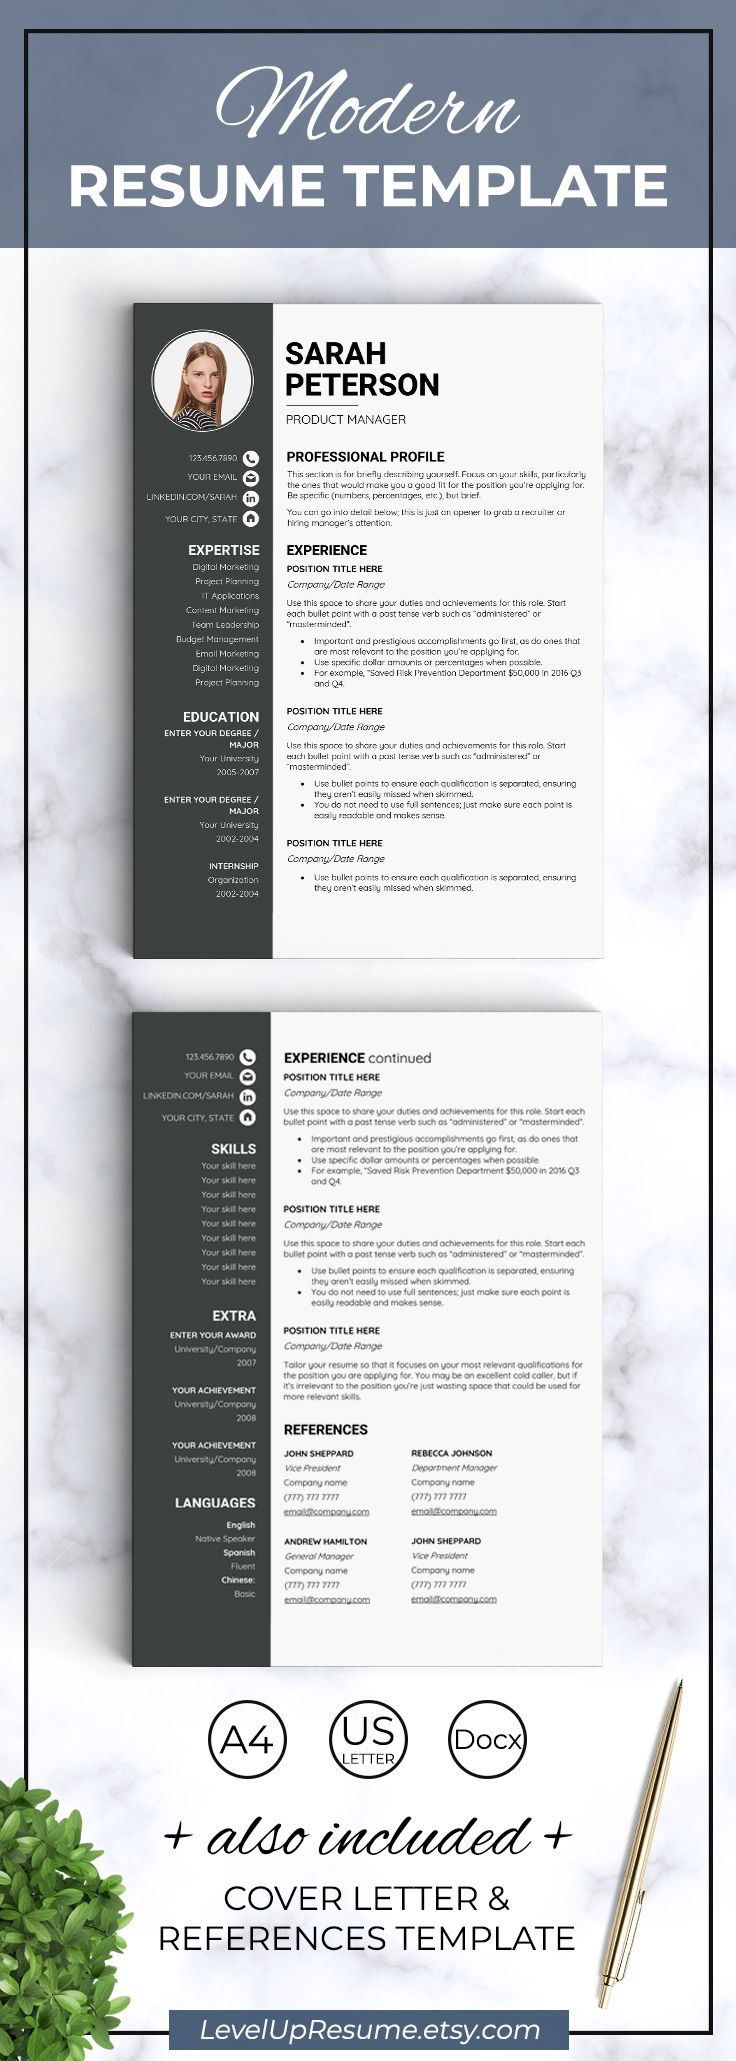 resume with photo two page resume template curriculum